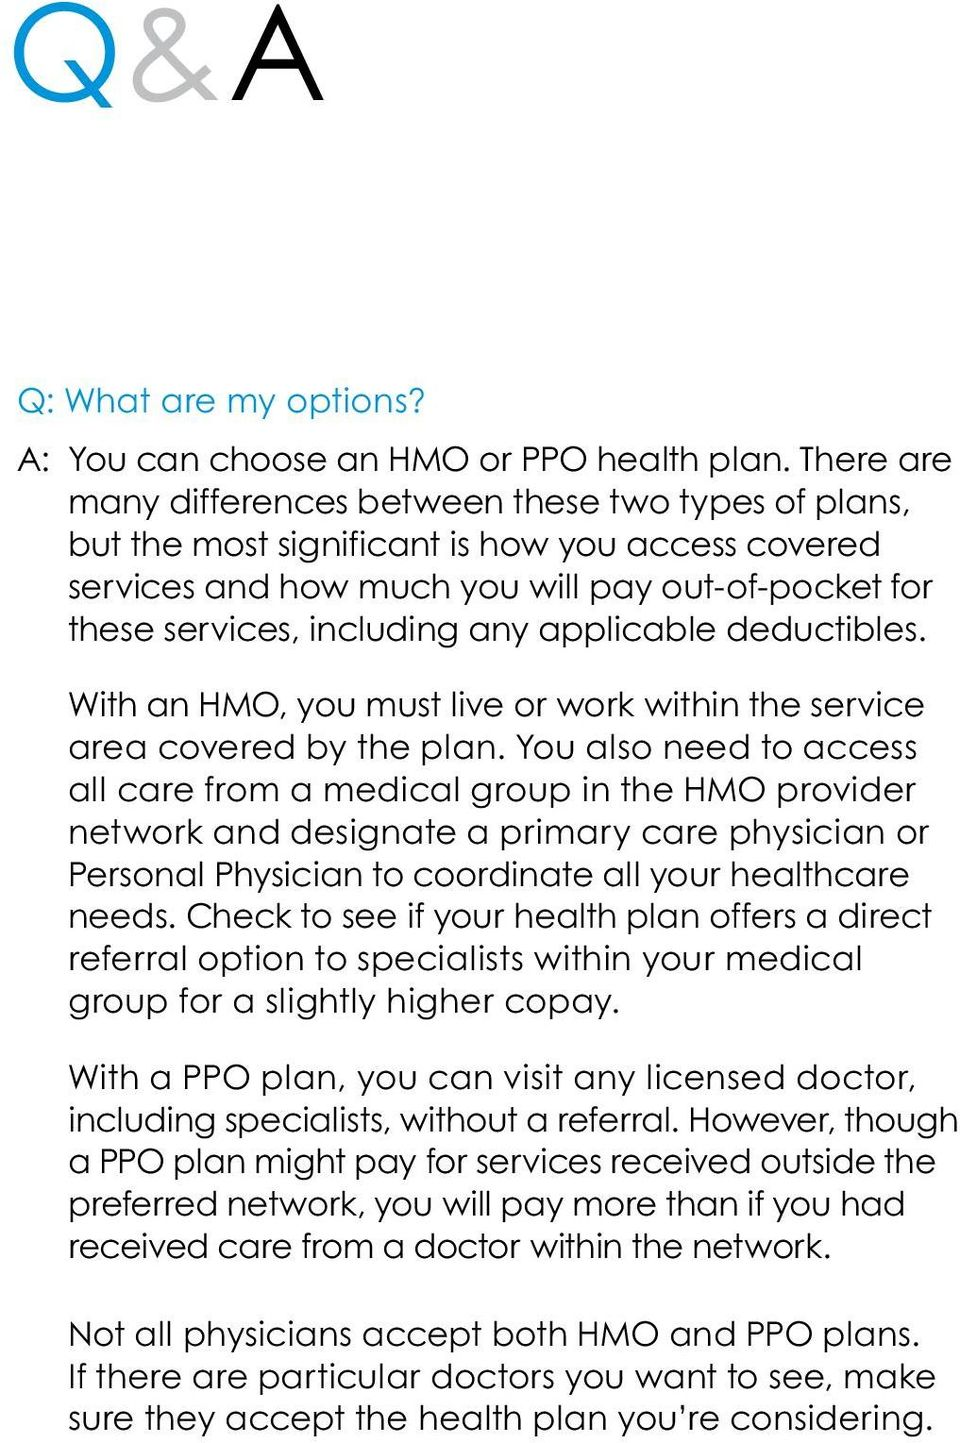 applicable deductibles. With an HMO, you must live or work within the service area covered by the plan.